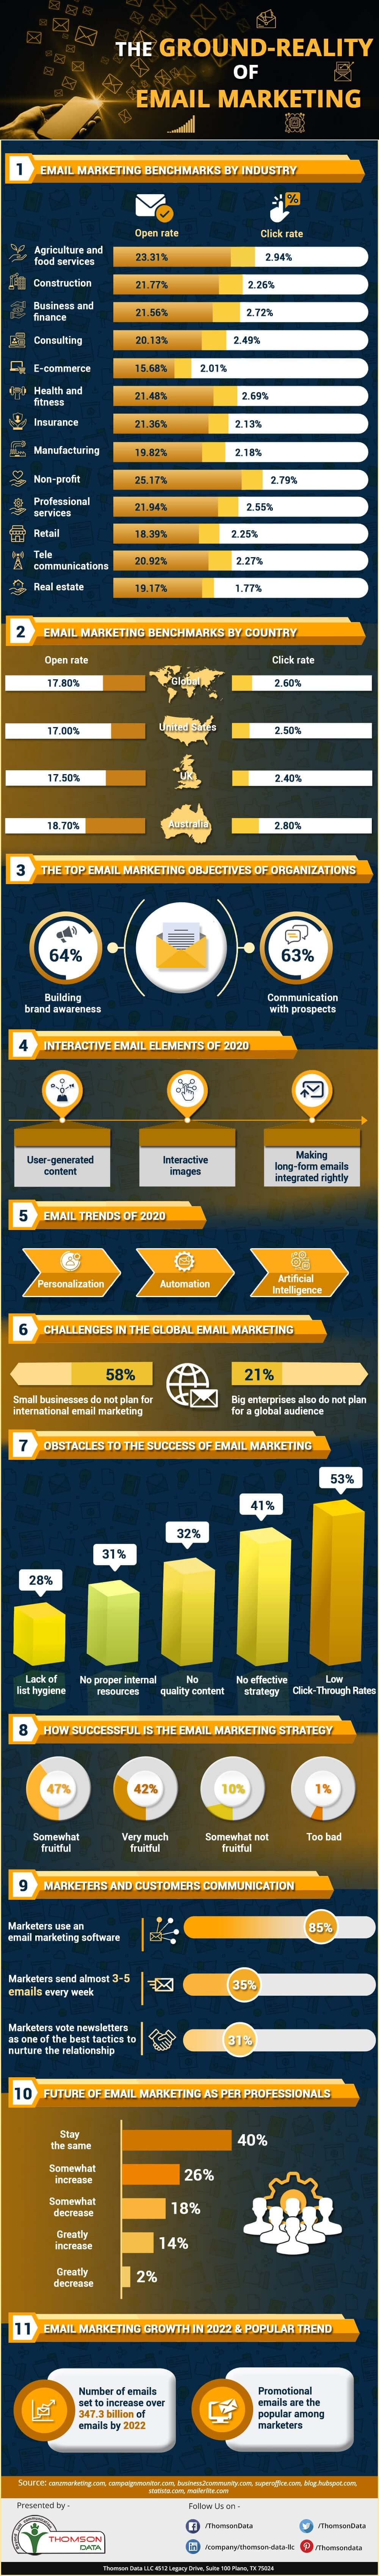 Ground Reality of Email Marketing